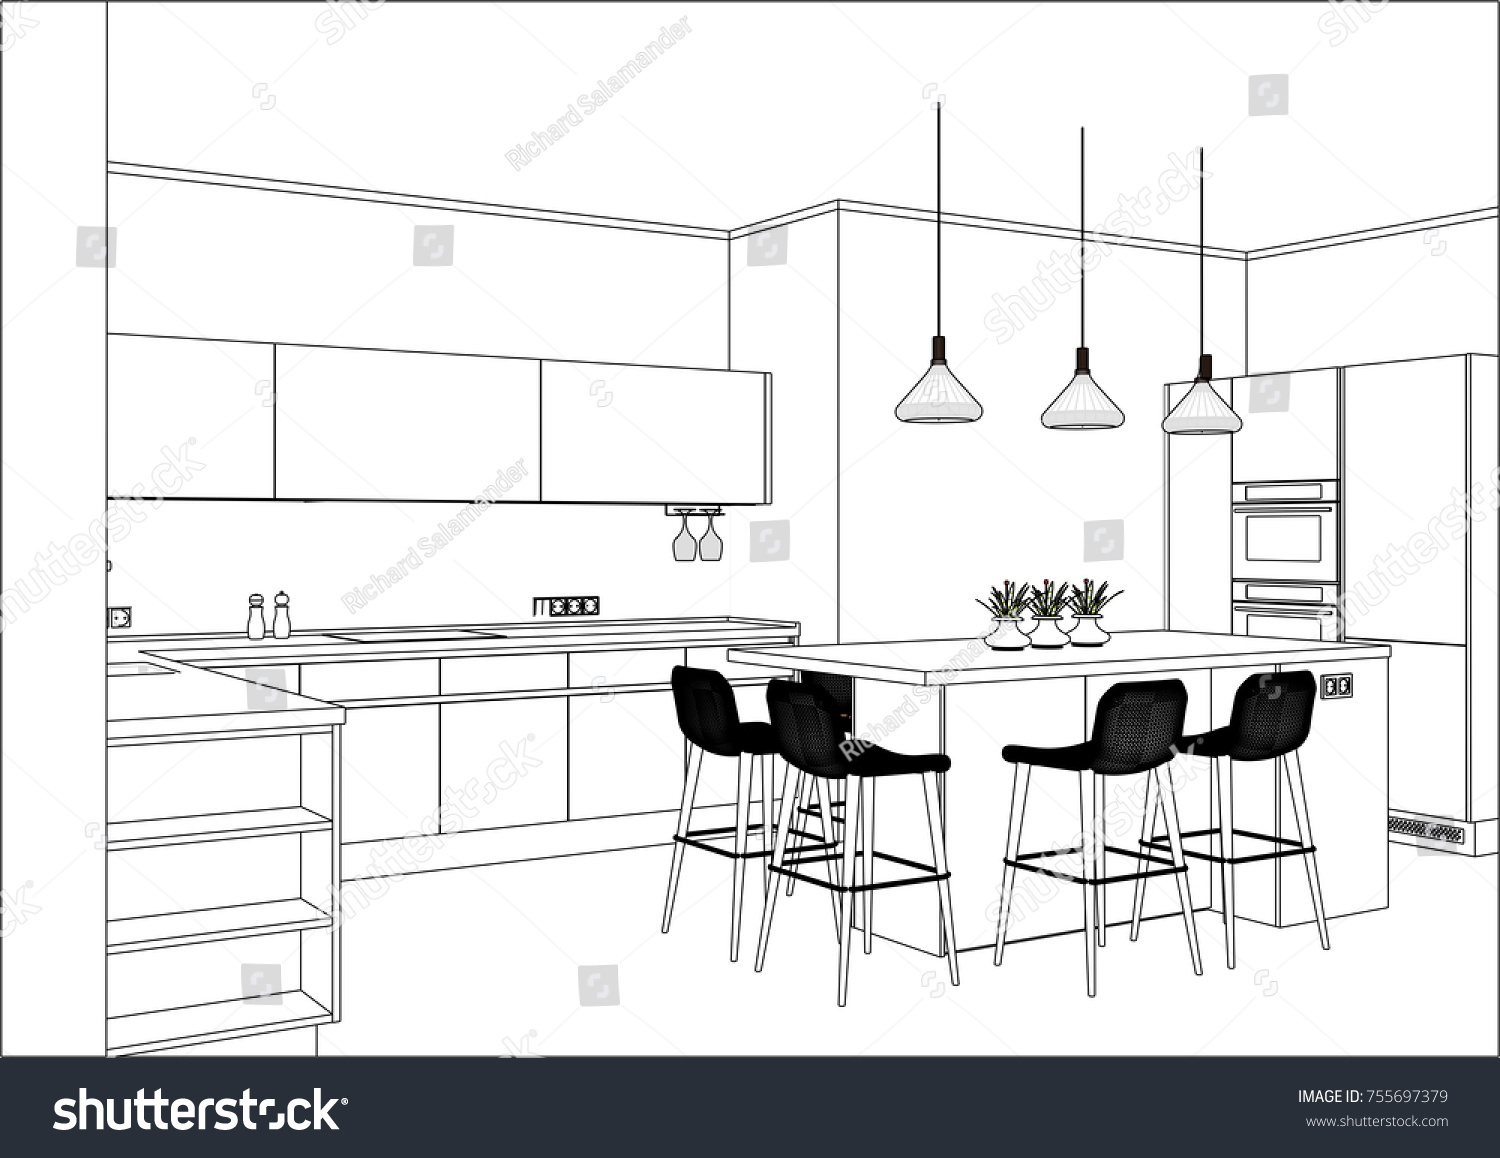 Elegant 3 D Vector Sketch Modern Kitchen Design Stock Vector 755697379    Shutterstock